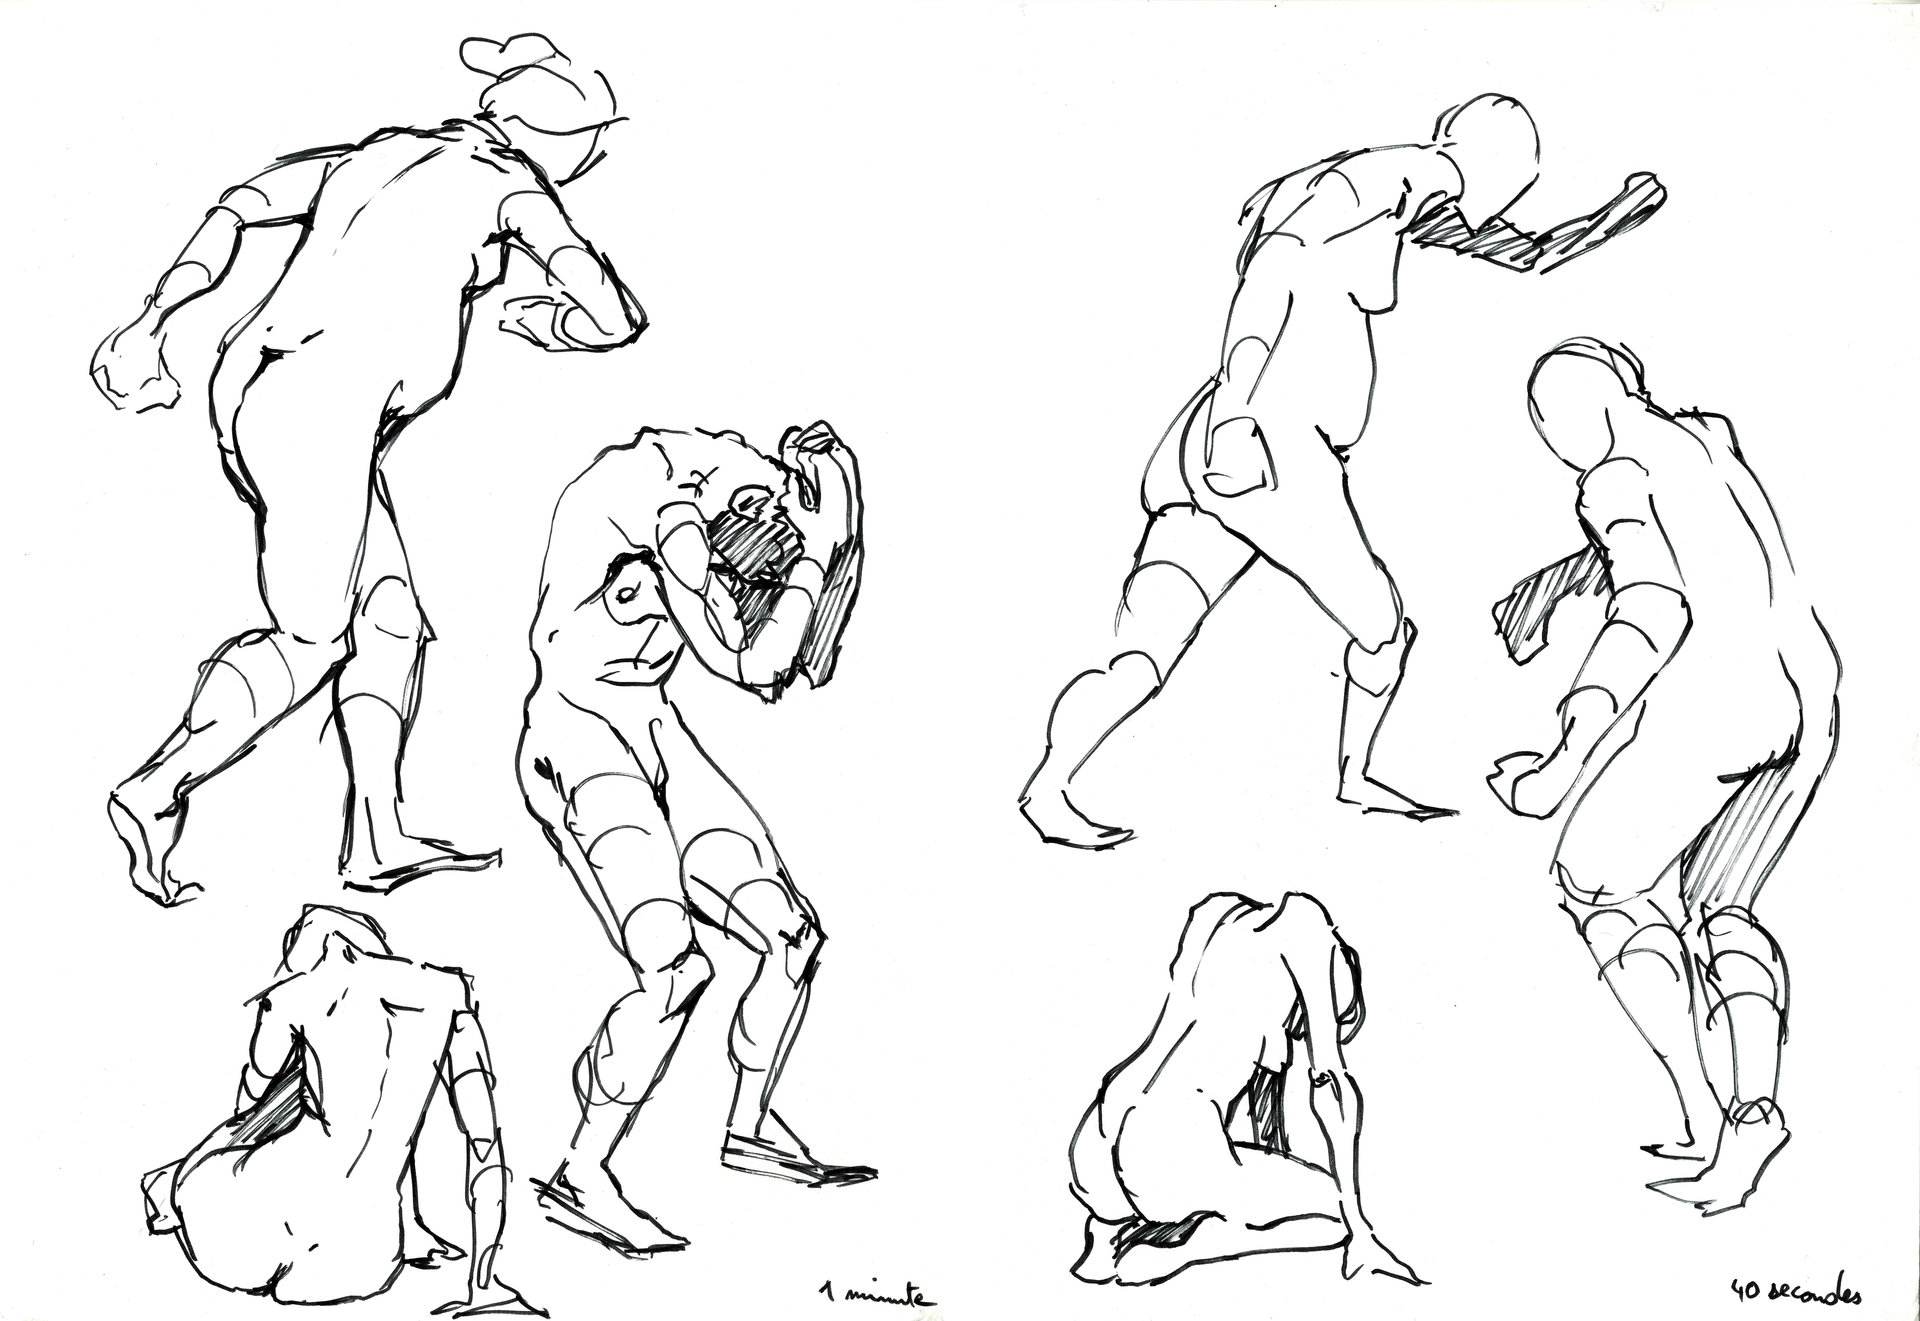 1 minute poses.